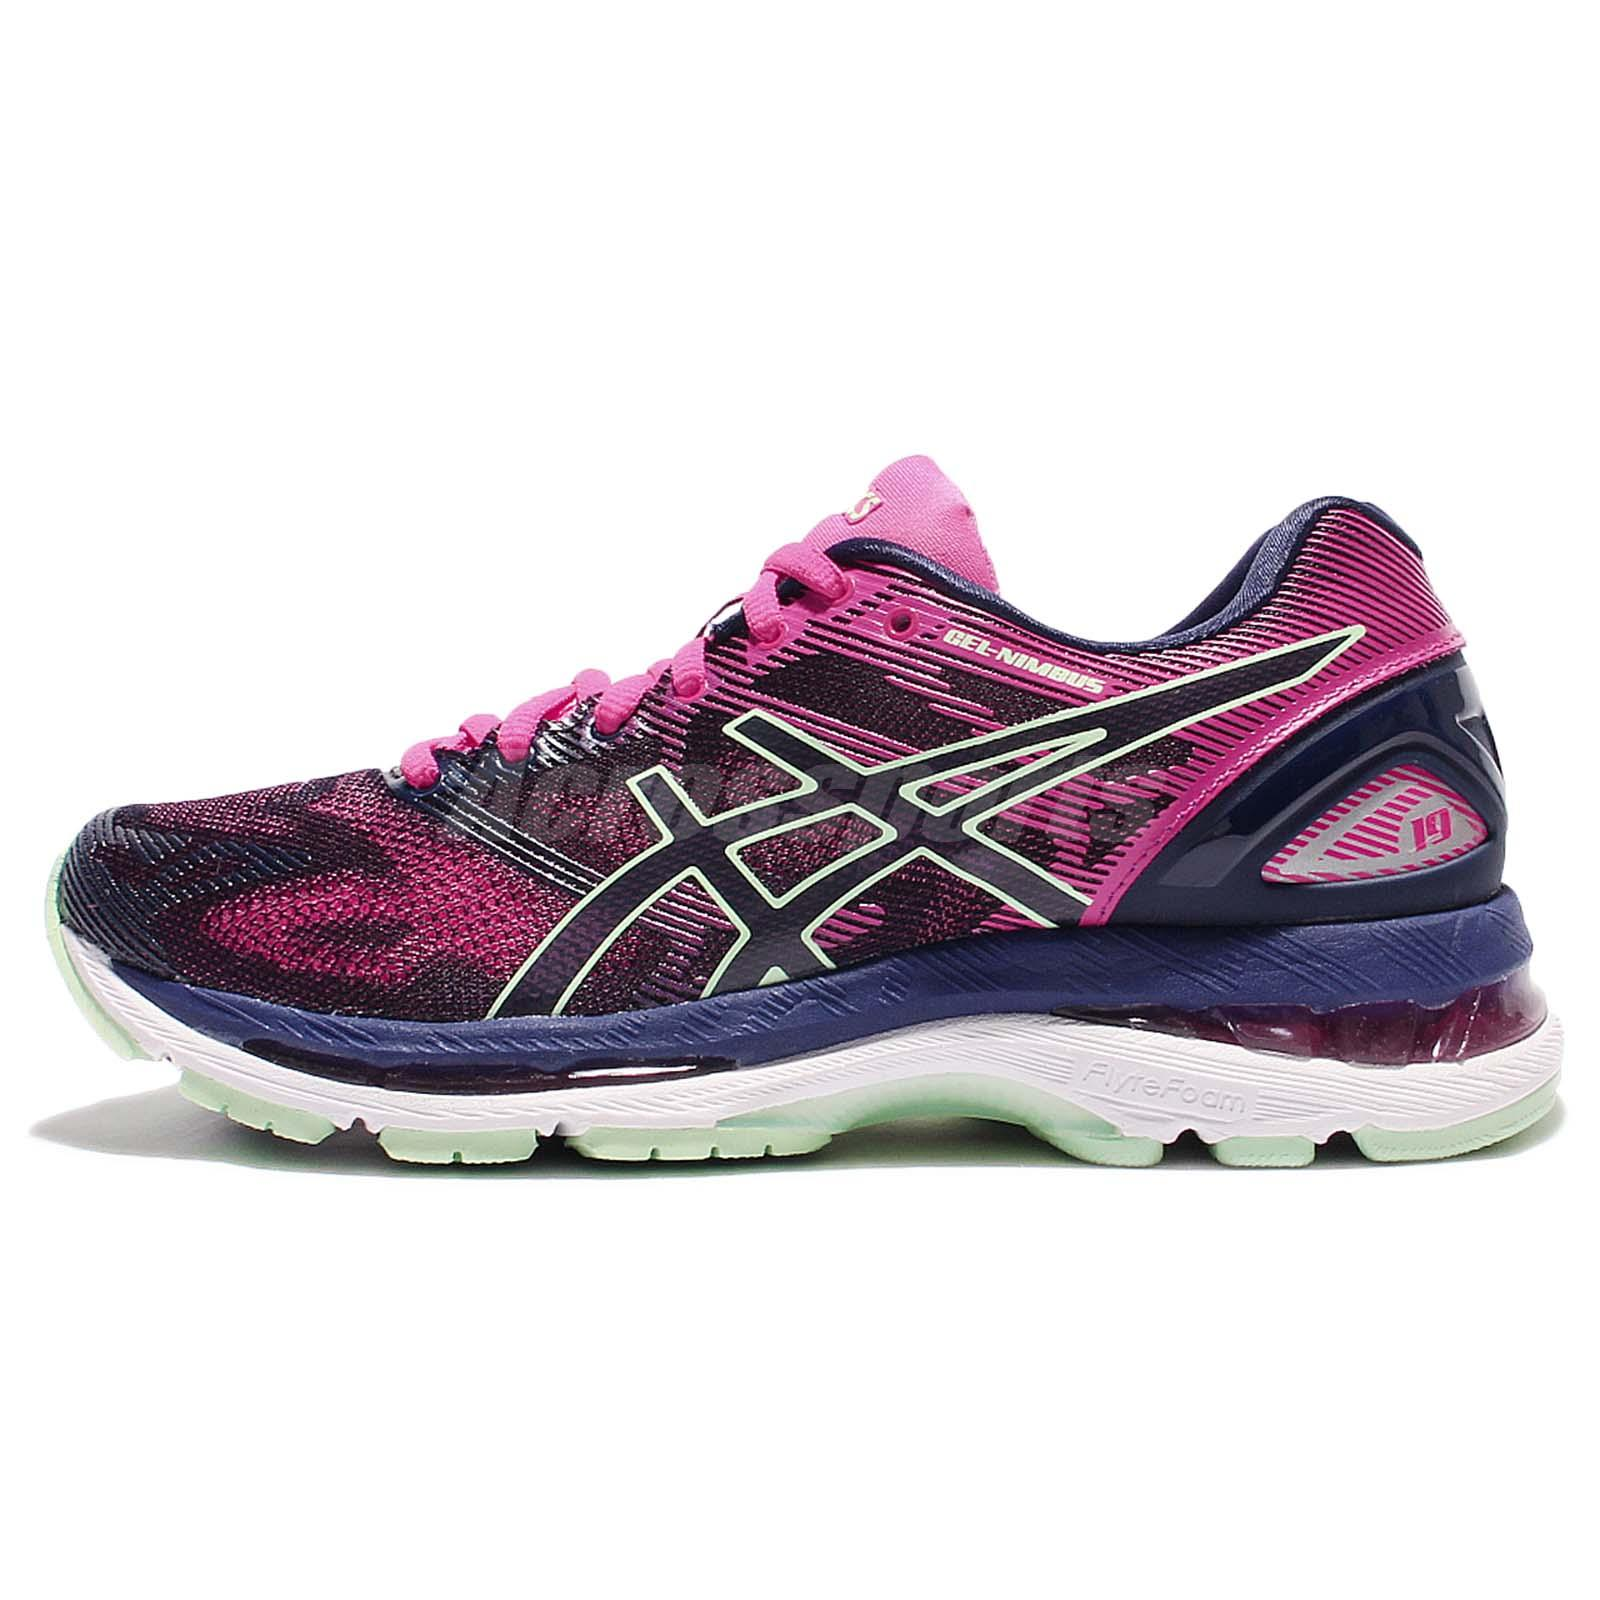 differently 1443a d5bd1 Details about Asics Gel-Nimbus 19 Pink Navy Women Running Training Shoes  Sneakers T750N-4987